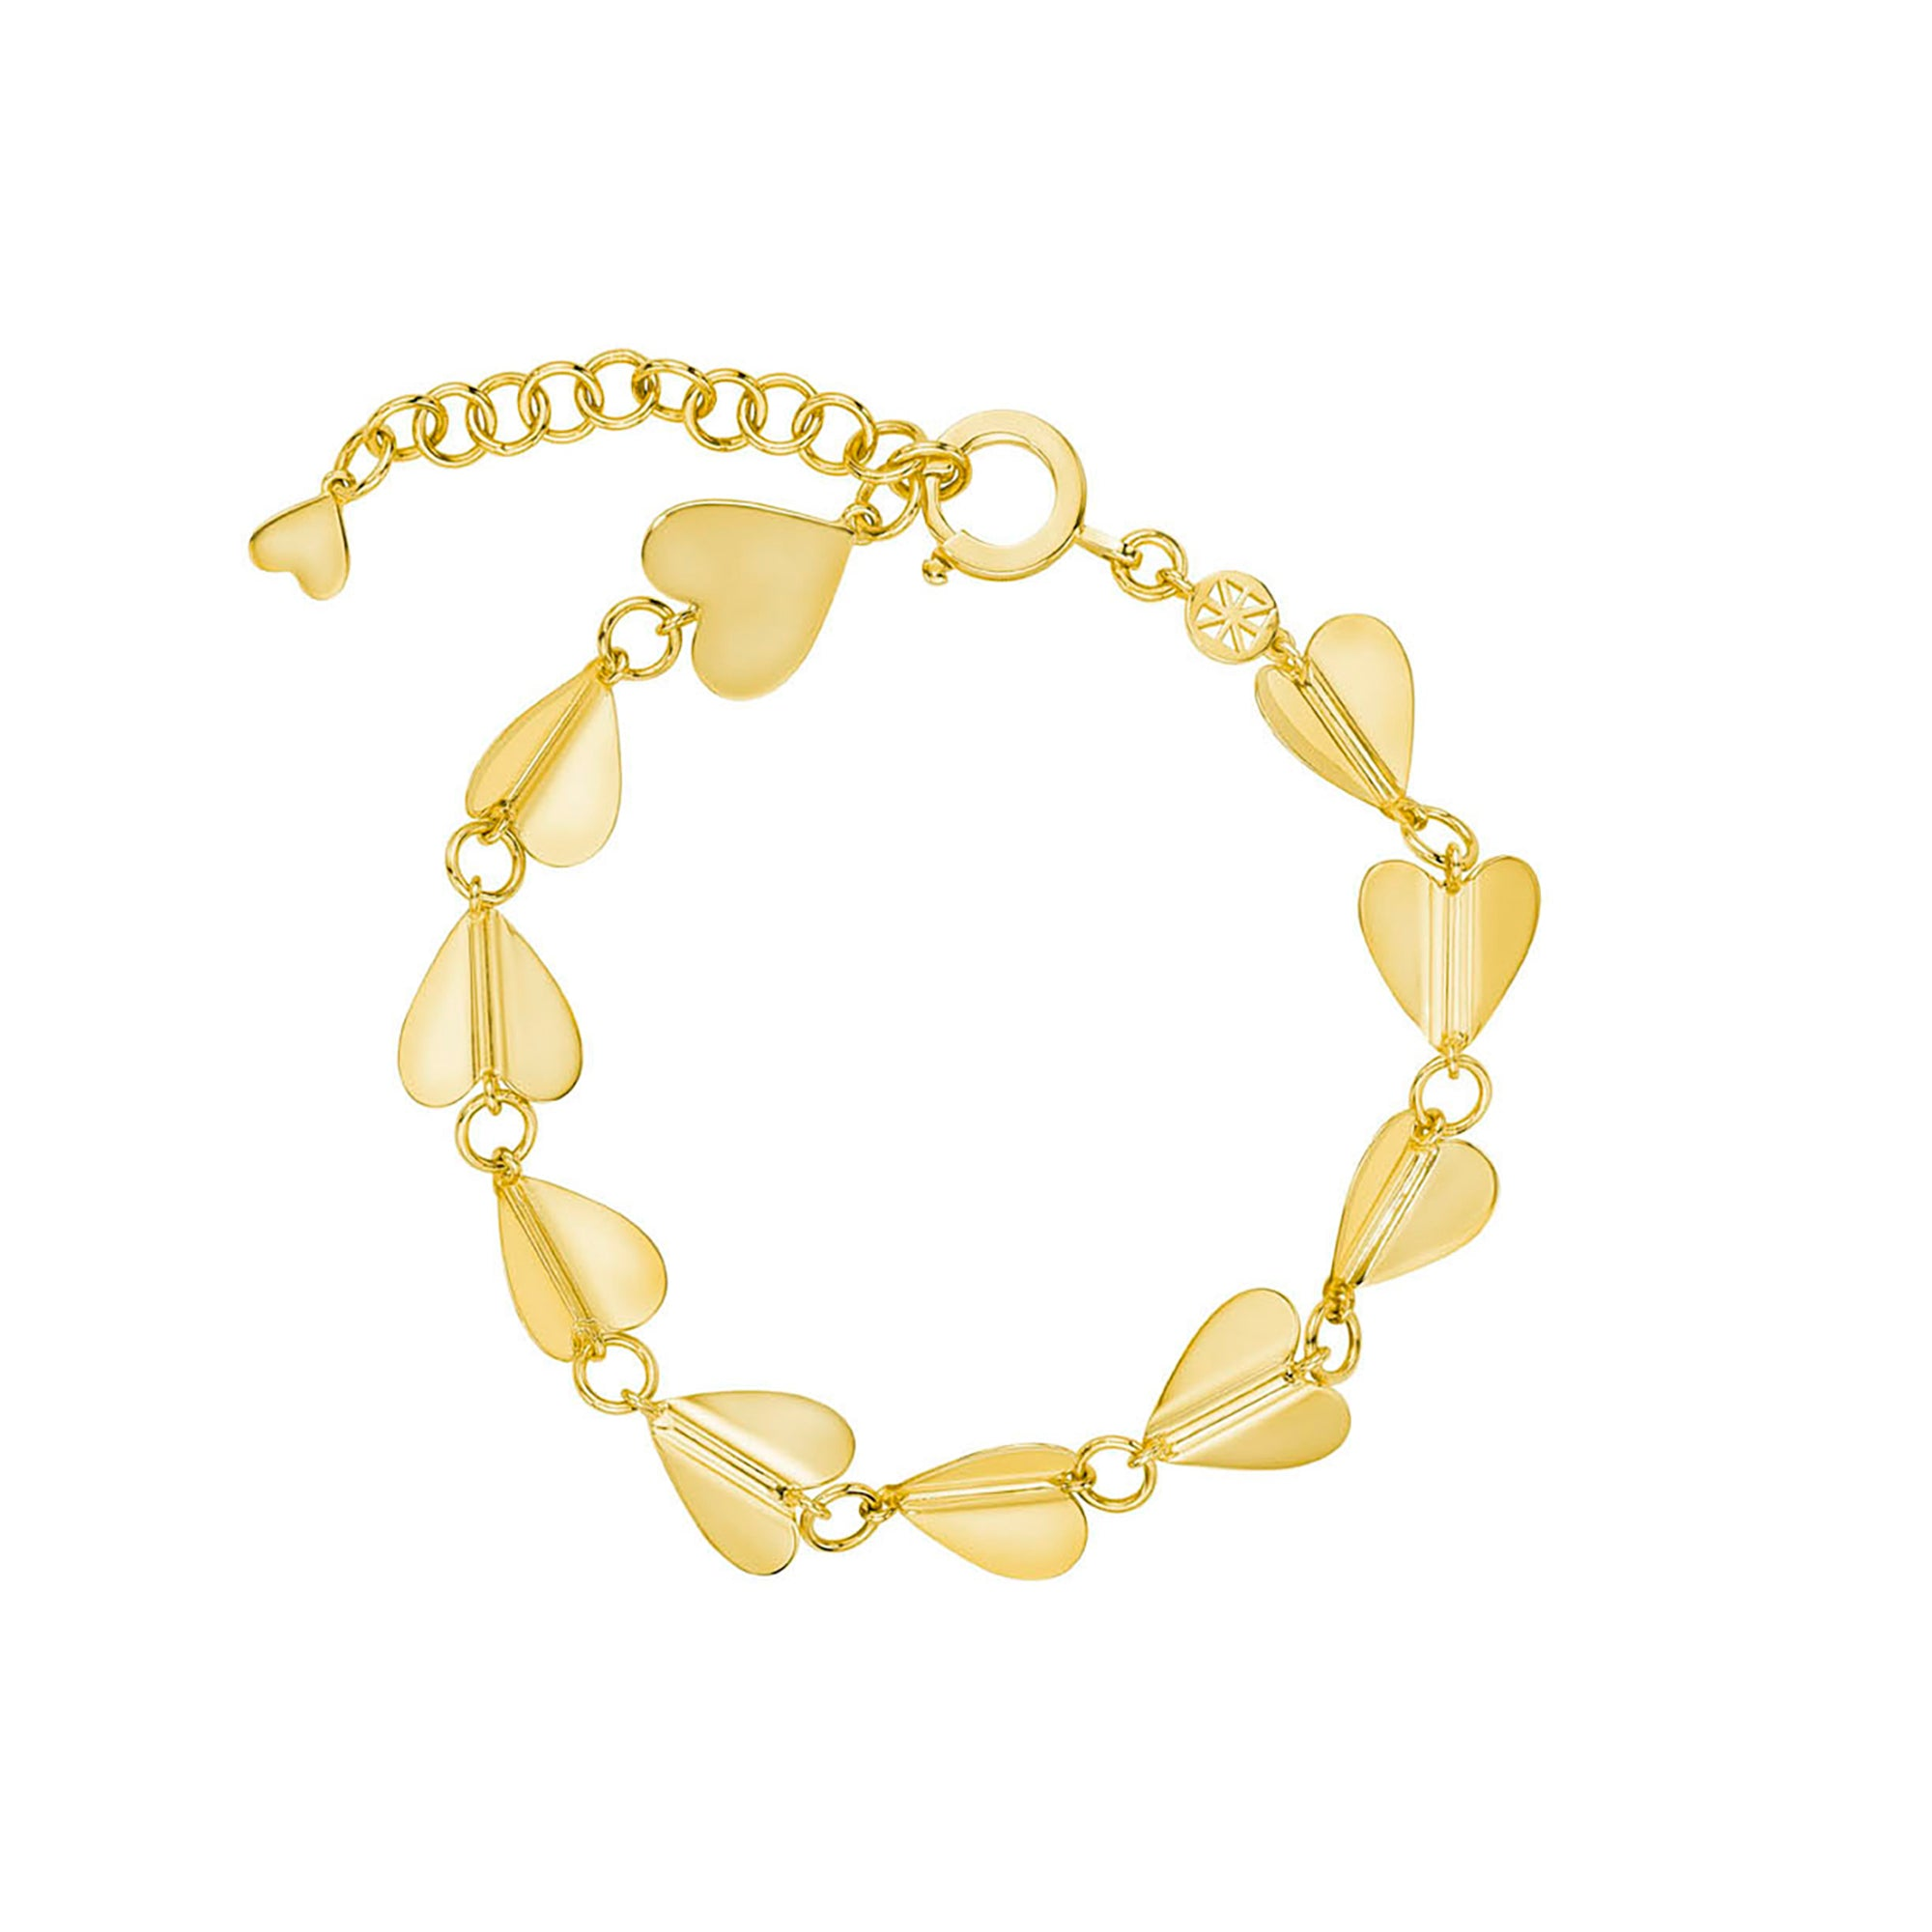 Cadar Wings of Love Bracelet - Gold (M) - Bracelets - Broken English Jewelry